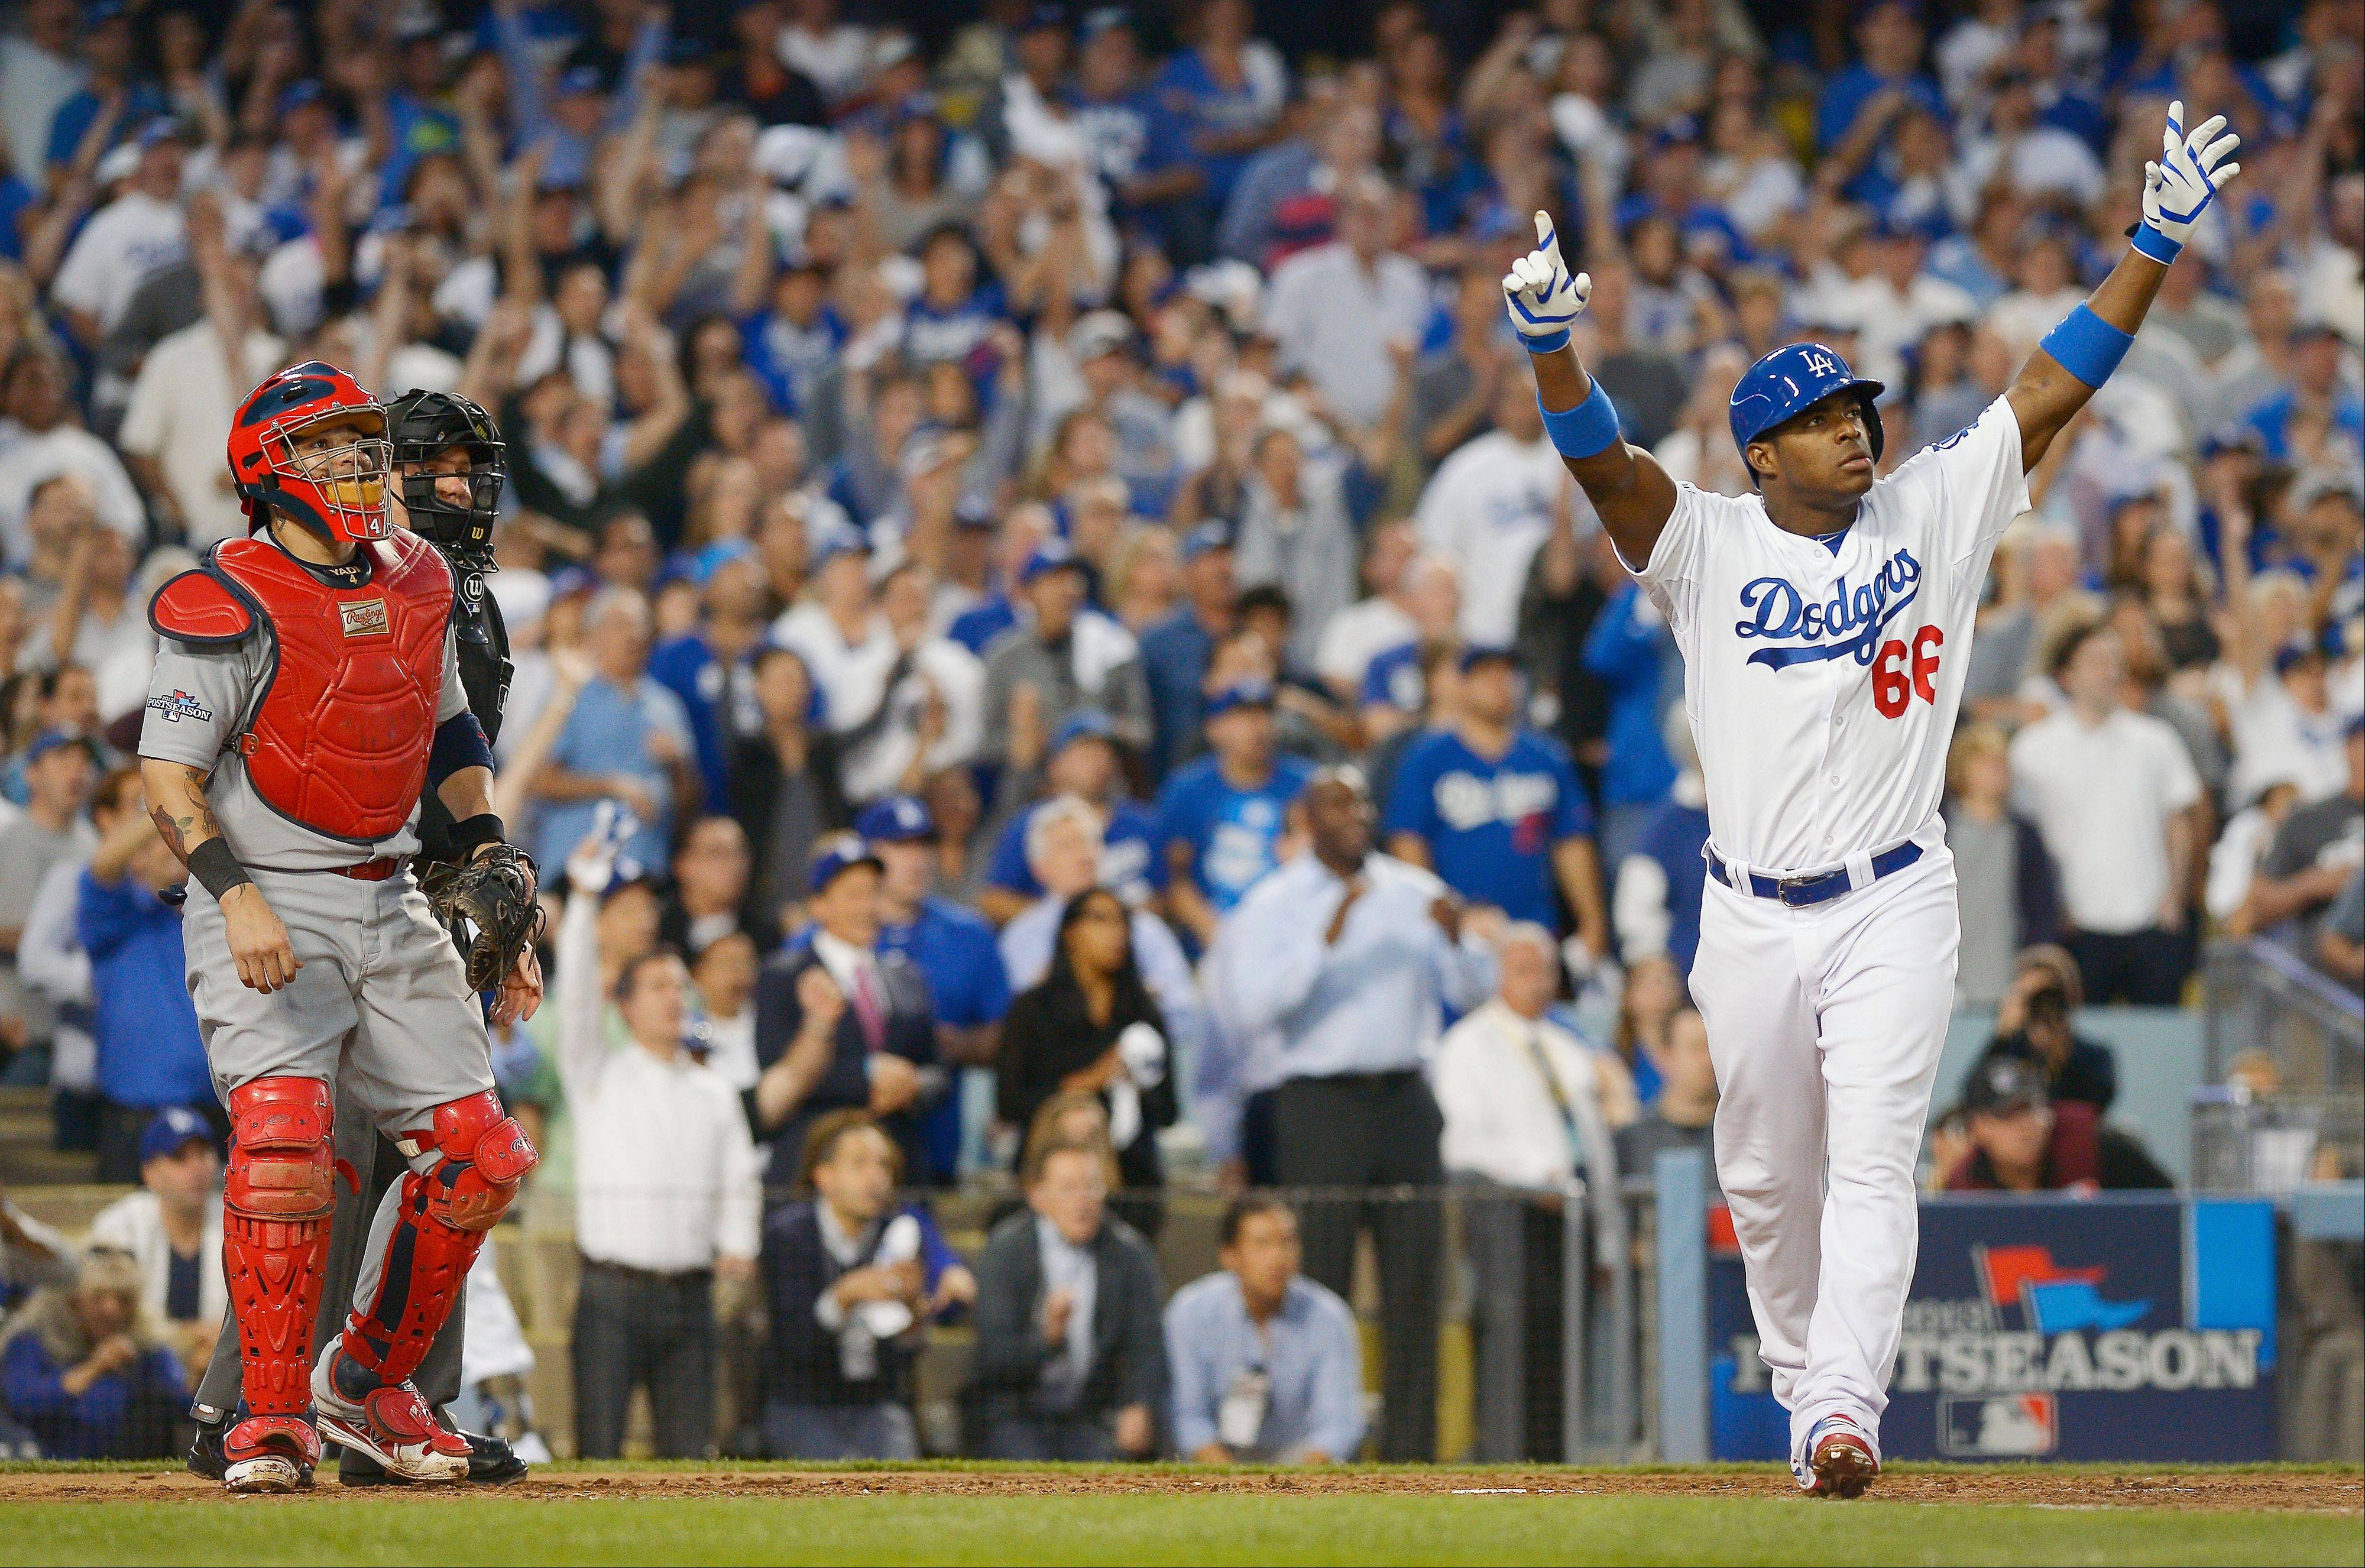 The Dodgers' Yasiel Puig celebrates at the plate after hitting an RBI triple during the fourth inning.